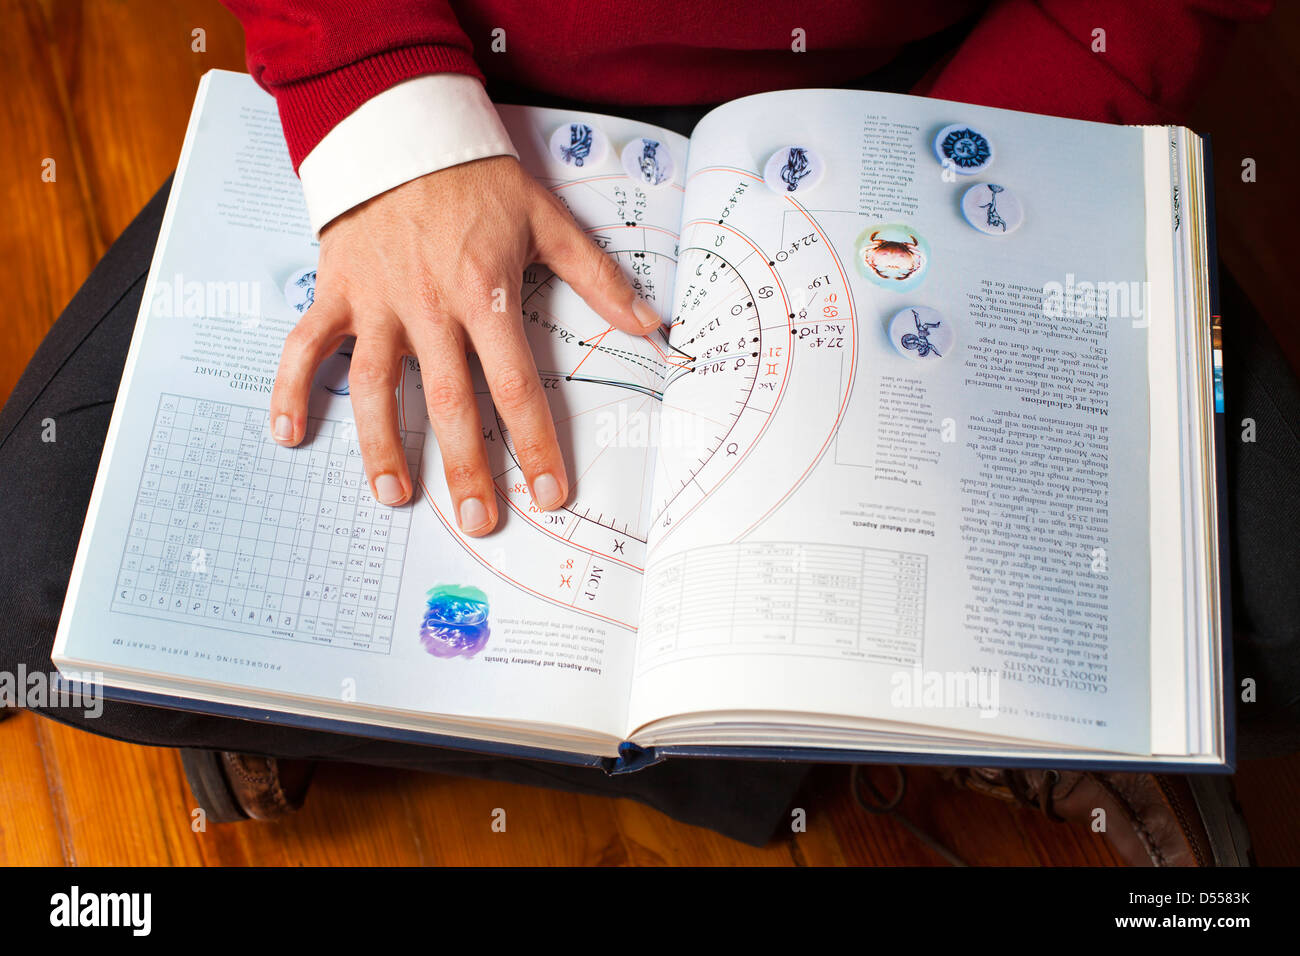 Man with astrology book. - Stock Image